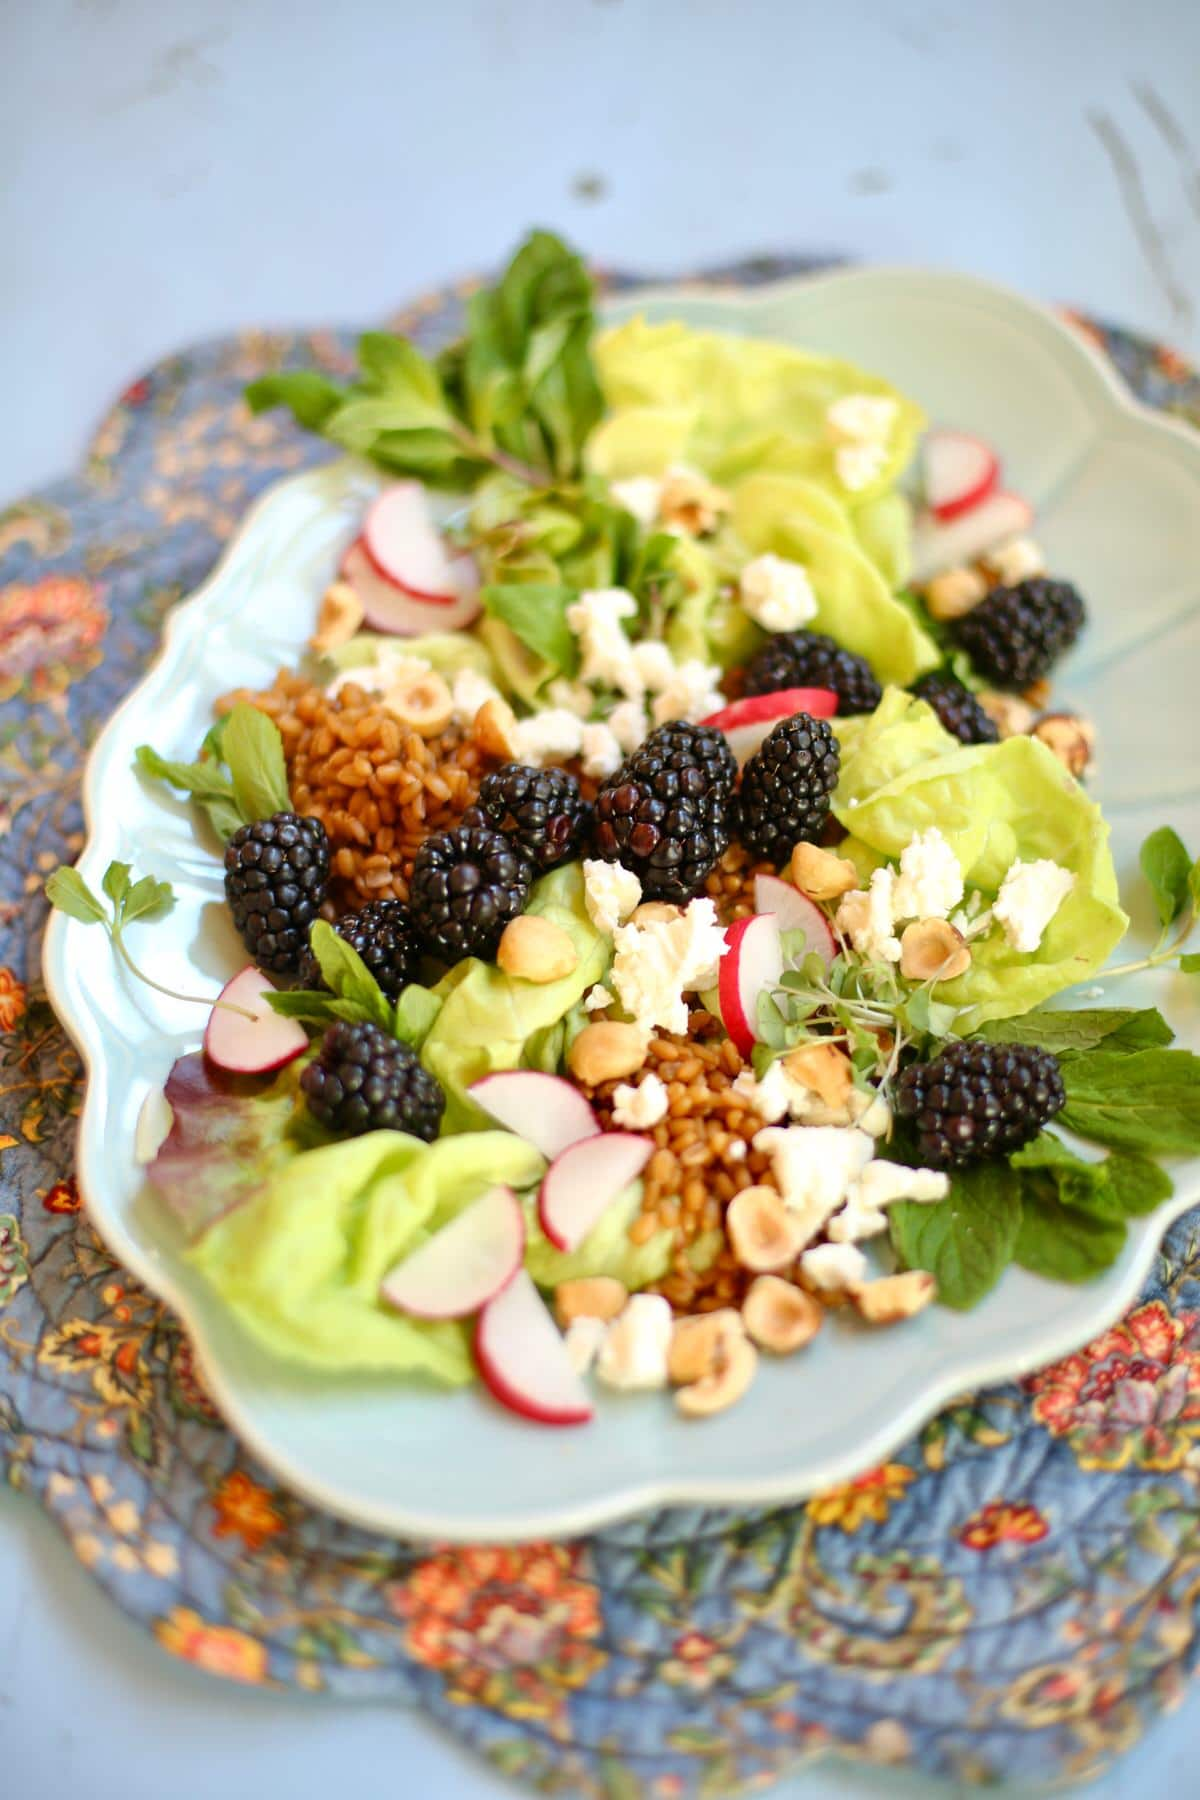 Blackberry, Goat Cheese, greens, radish and hazelnuts on a ling blue platter